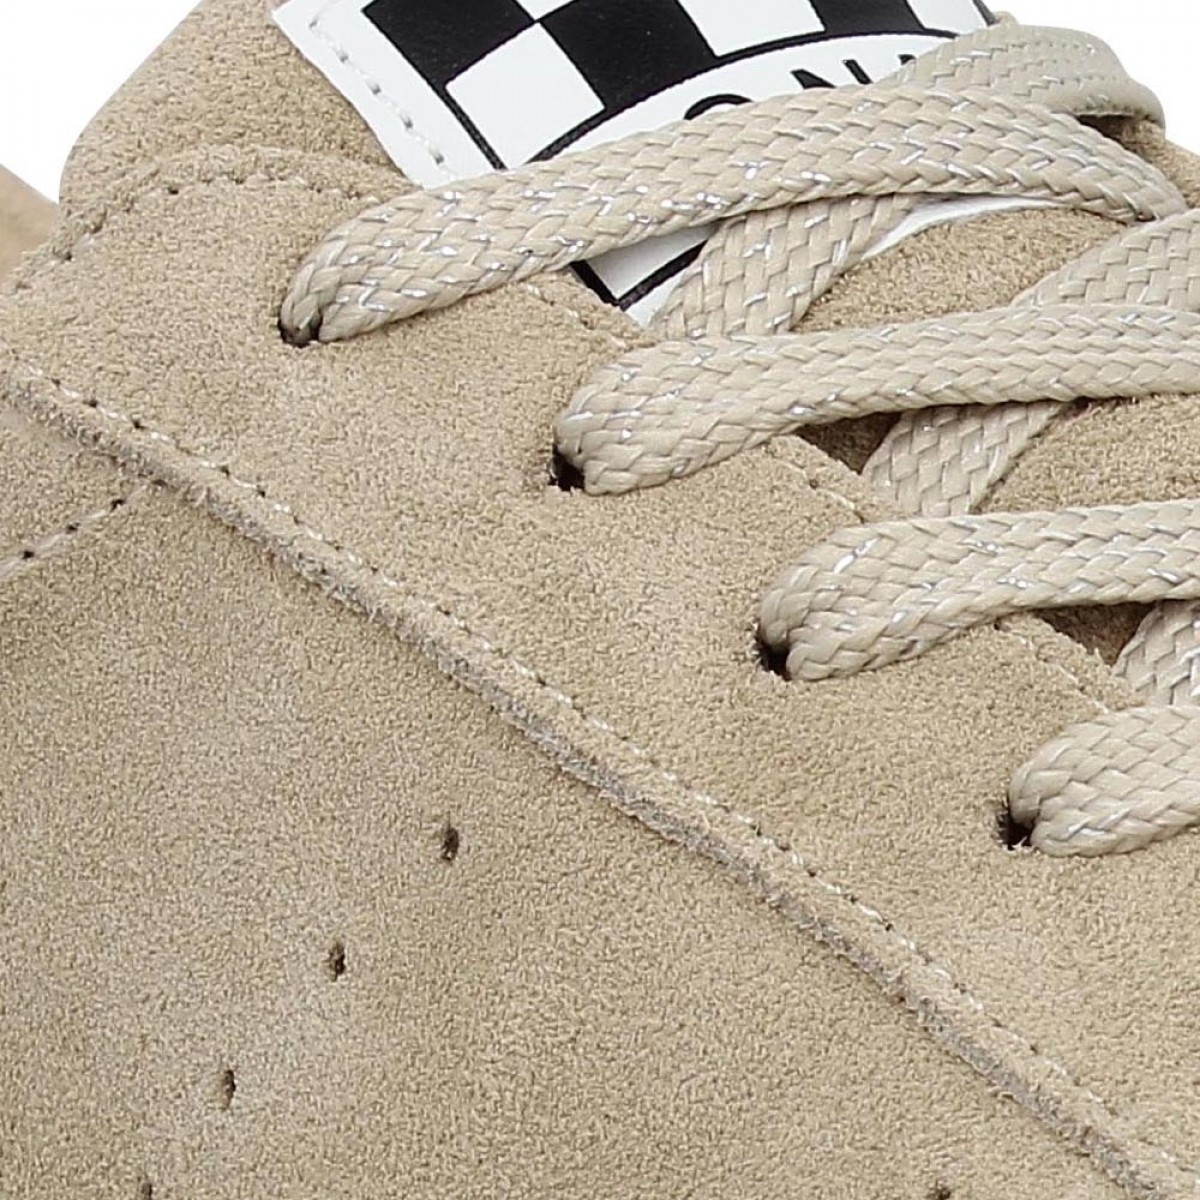 Sable No Suede Femme Name Sneaker Picadilly qUpzVSM